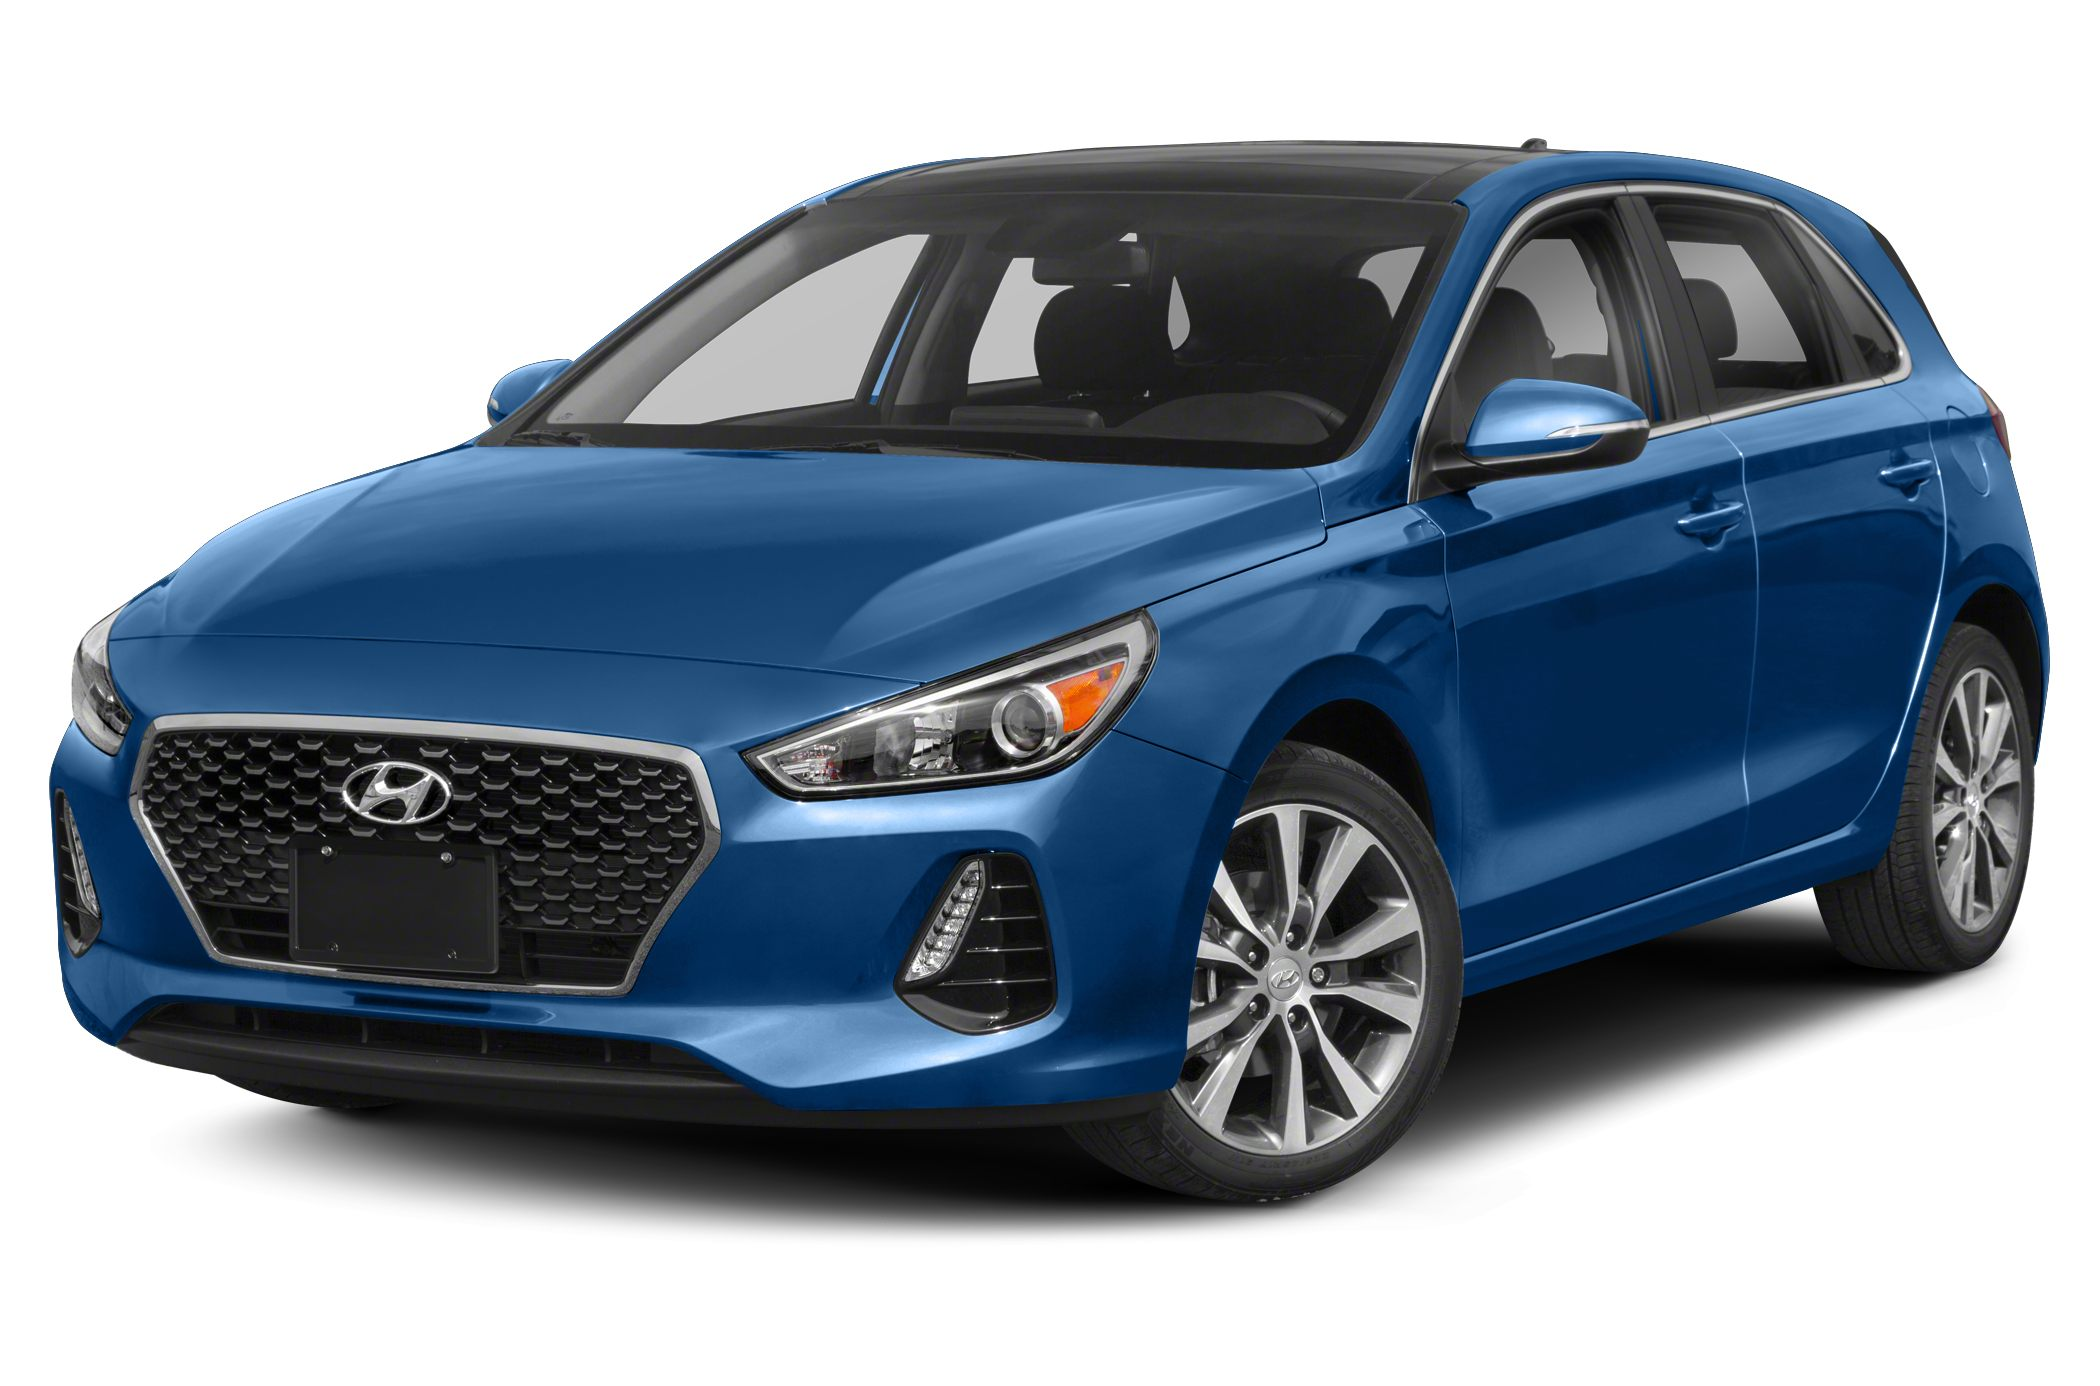 Hyundai Canada Incentives for the new 2021 Hyundai Elantra GT in Milton, Toronto, and the GTA